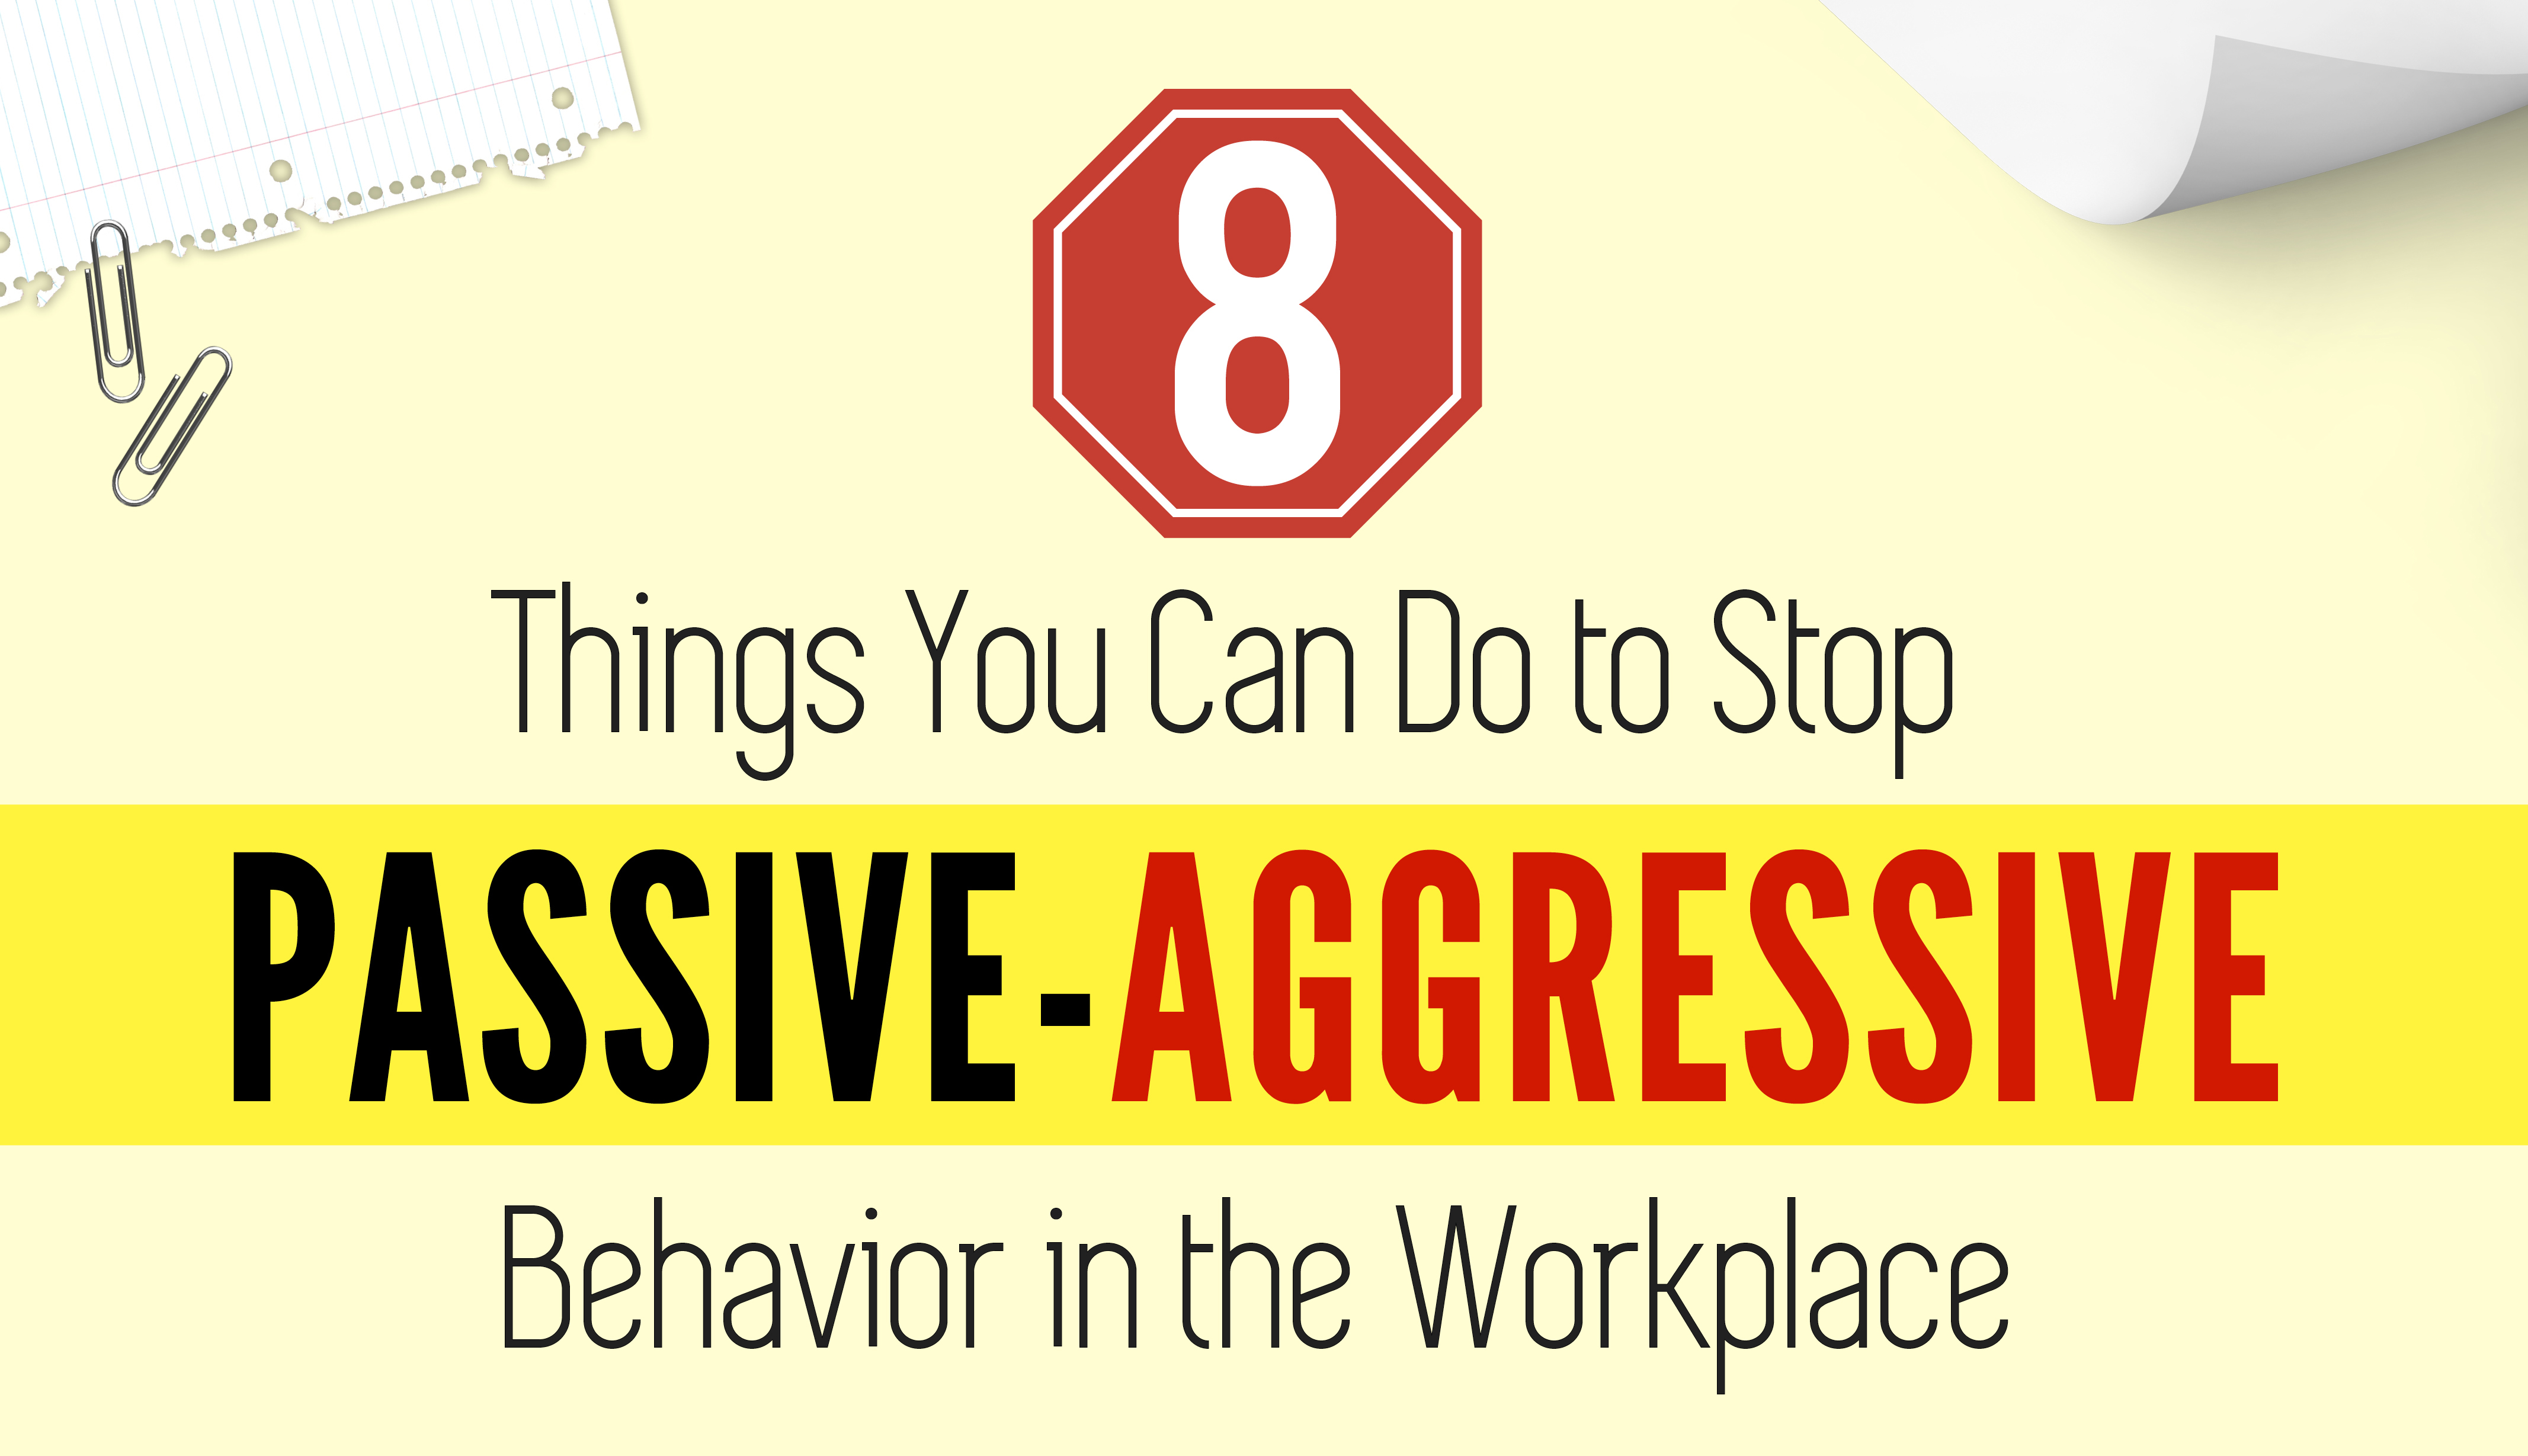 8 Things To Stop Passive Aggressive Behavior In Workplace